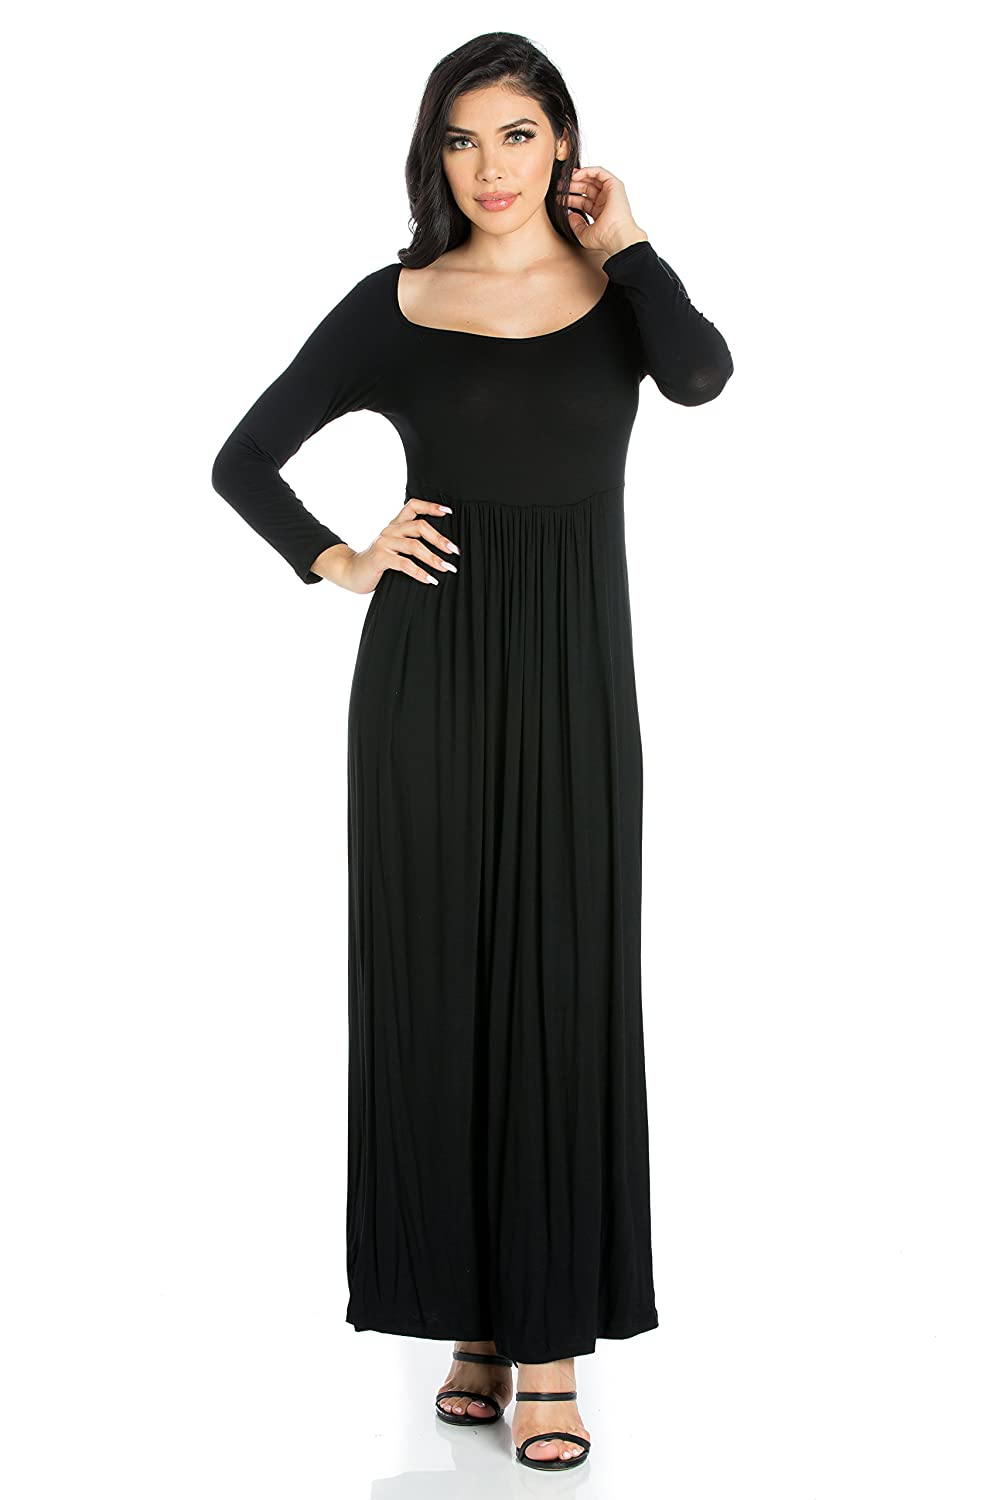 d87771d27ce 24seven Comfort Apparel Women s Clothes Long Sleeve Empire Waist Square  Neck Maxi Dress - Made in USA - (Sizes S-1XL) at Amazon Women s Clothing  store